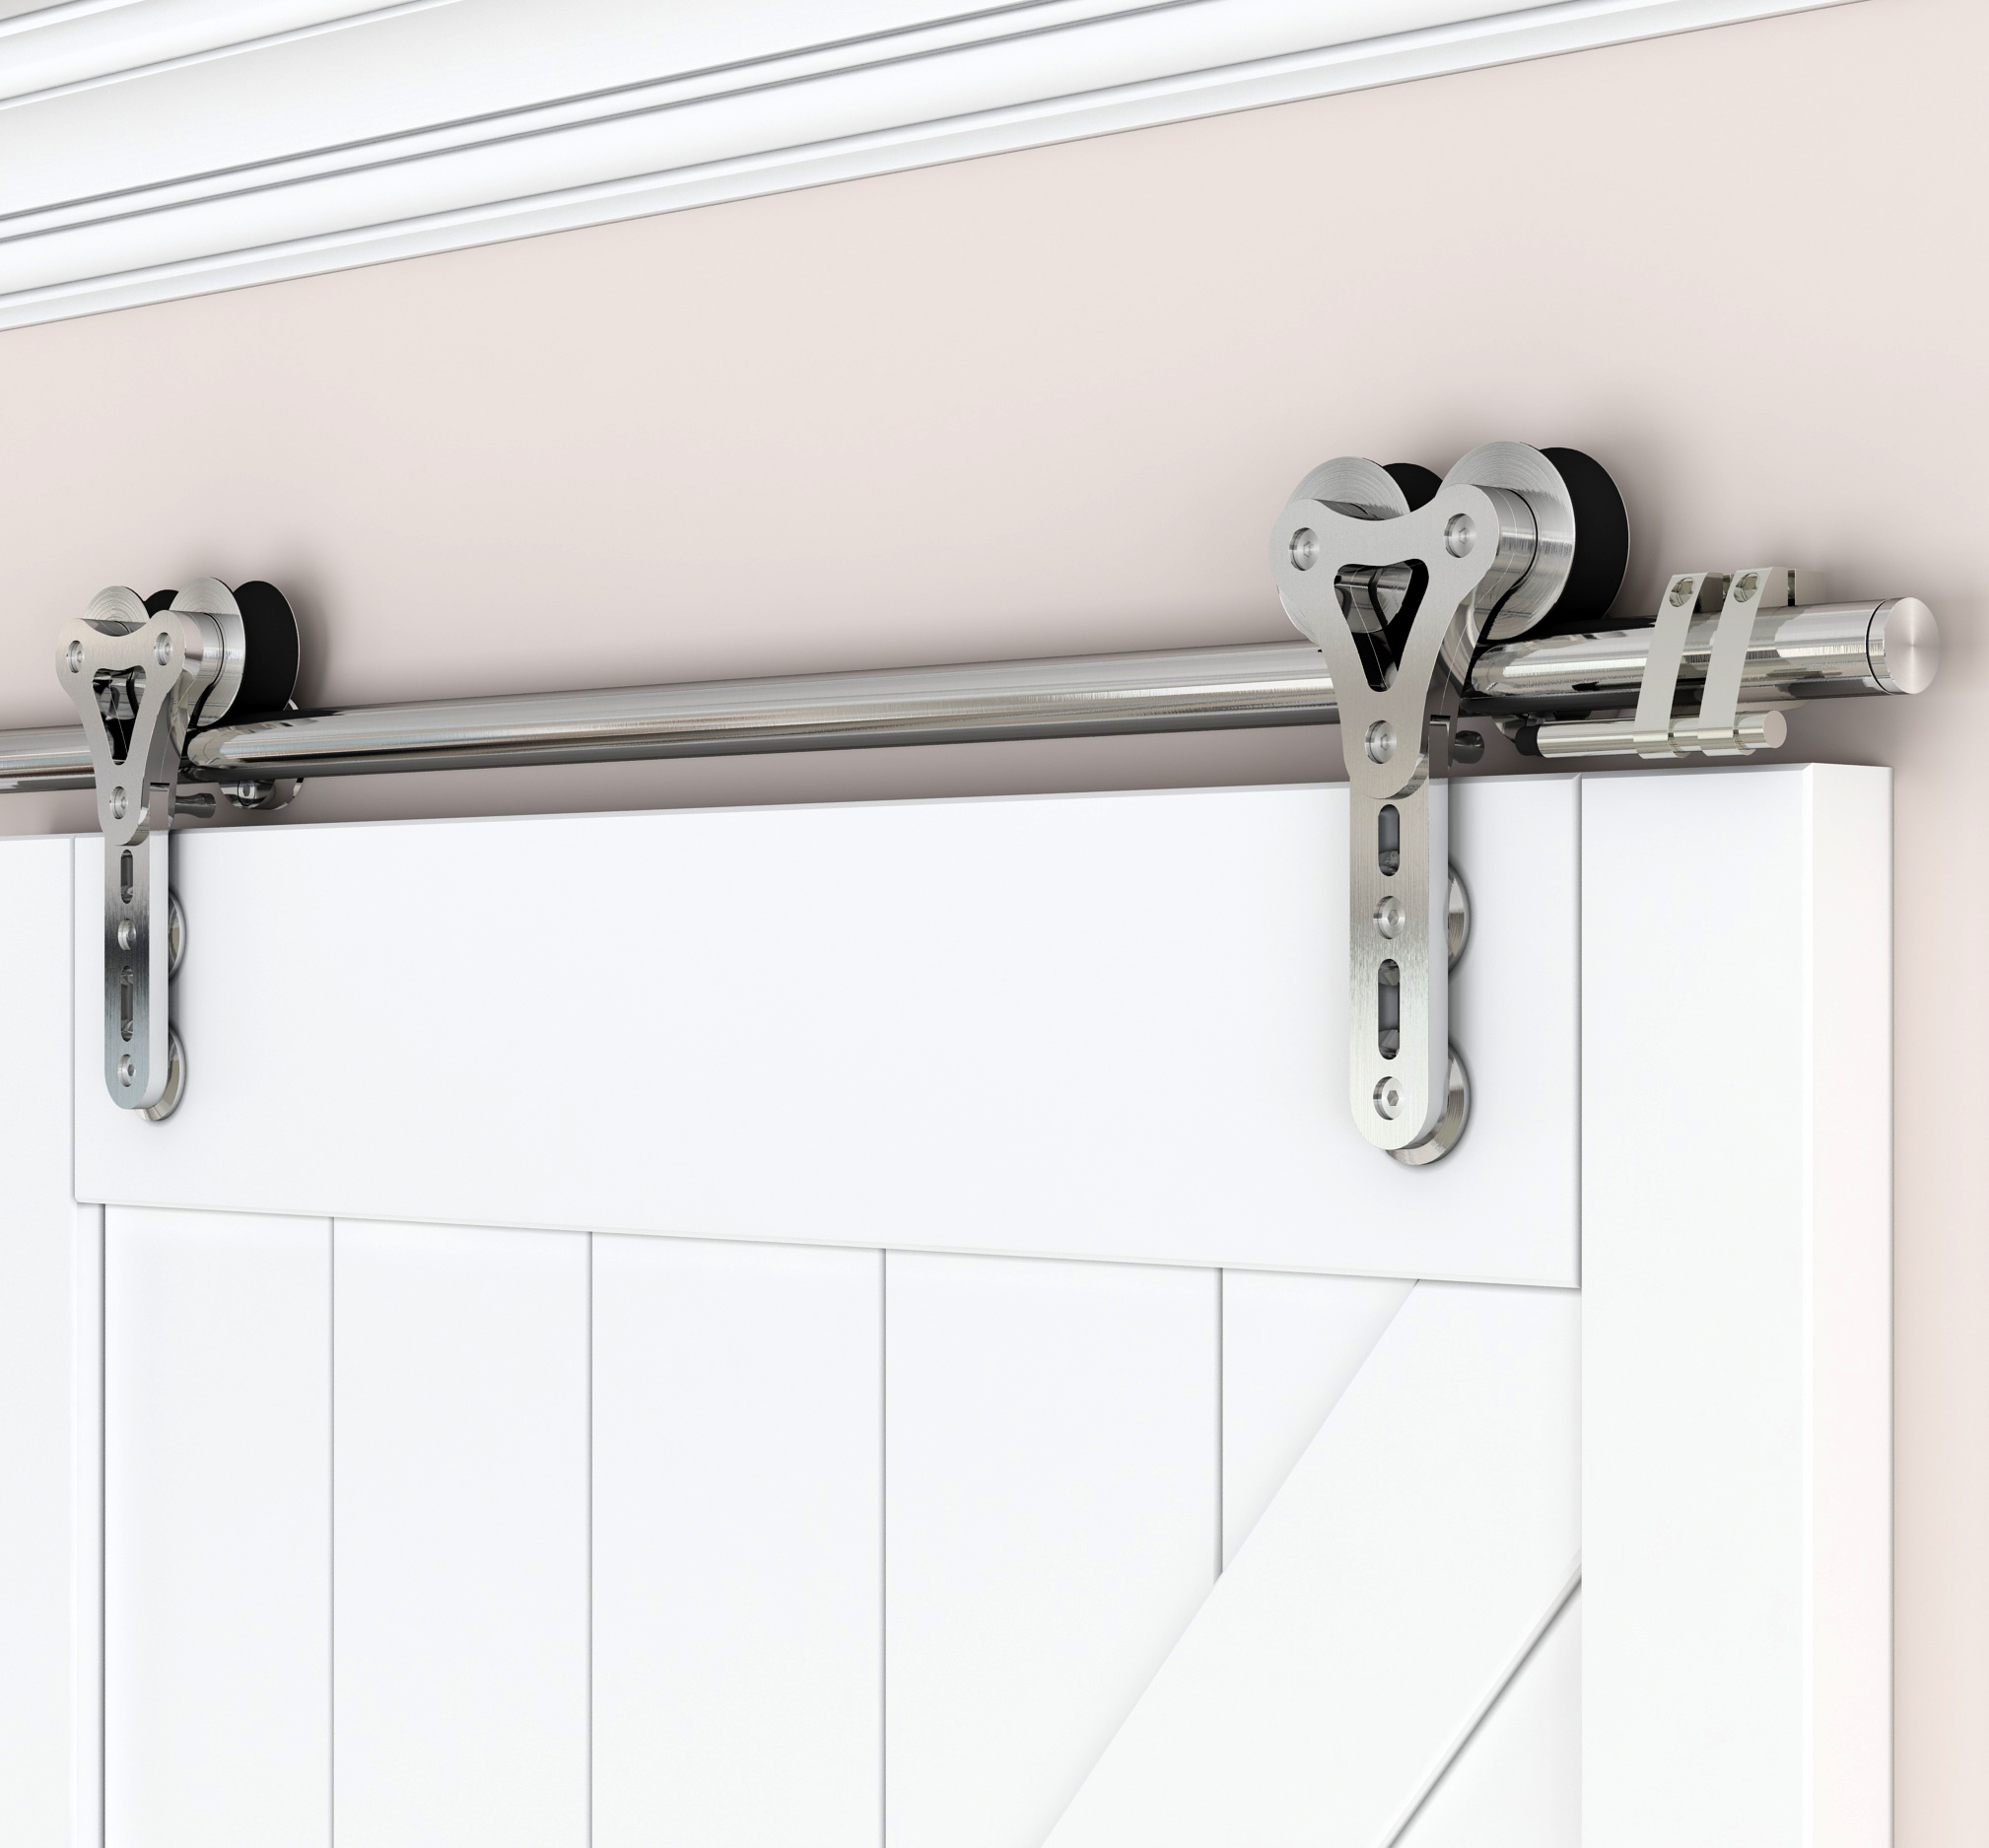 DIYHD Stainless Steel Sliding Barn Door Hardware Double Head Hollow-out Hanger Wheel Barn Track Sliding Kit